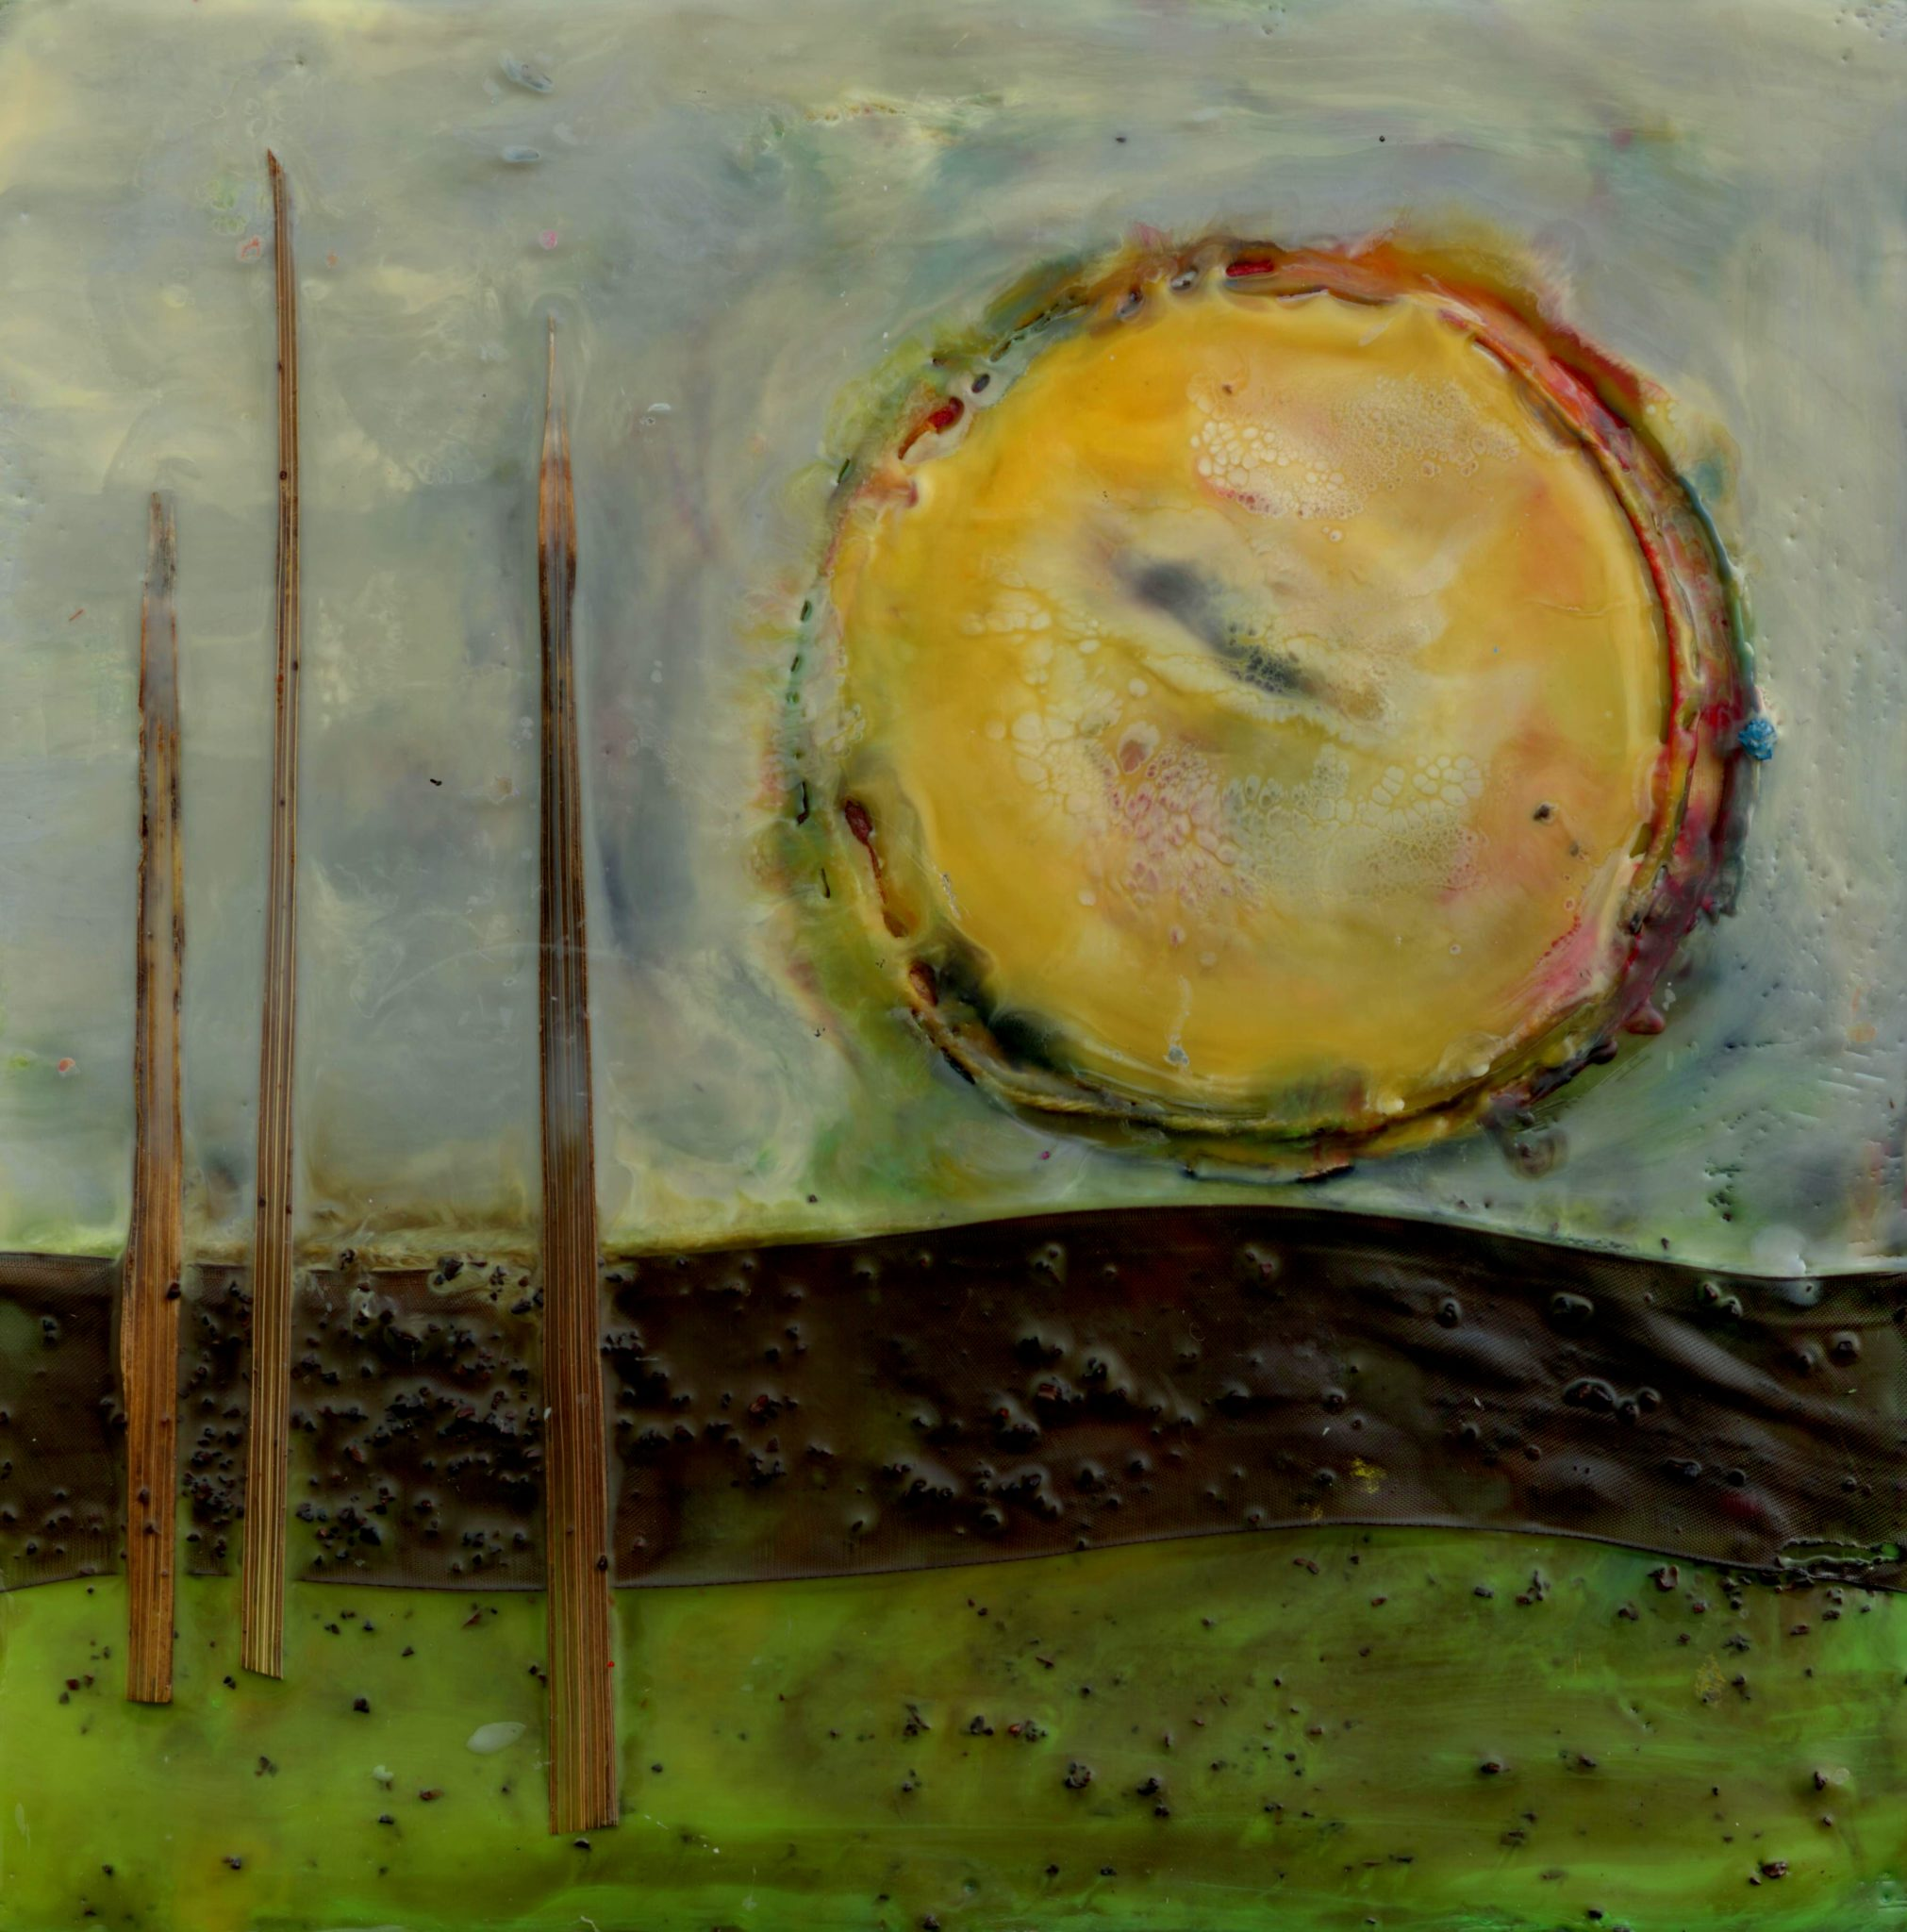 A New Day, mixed media encaustic by Courtney Putnam